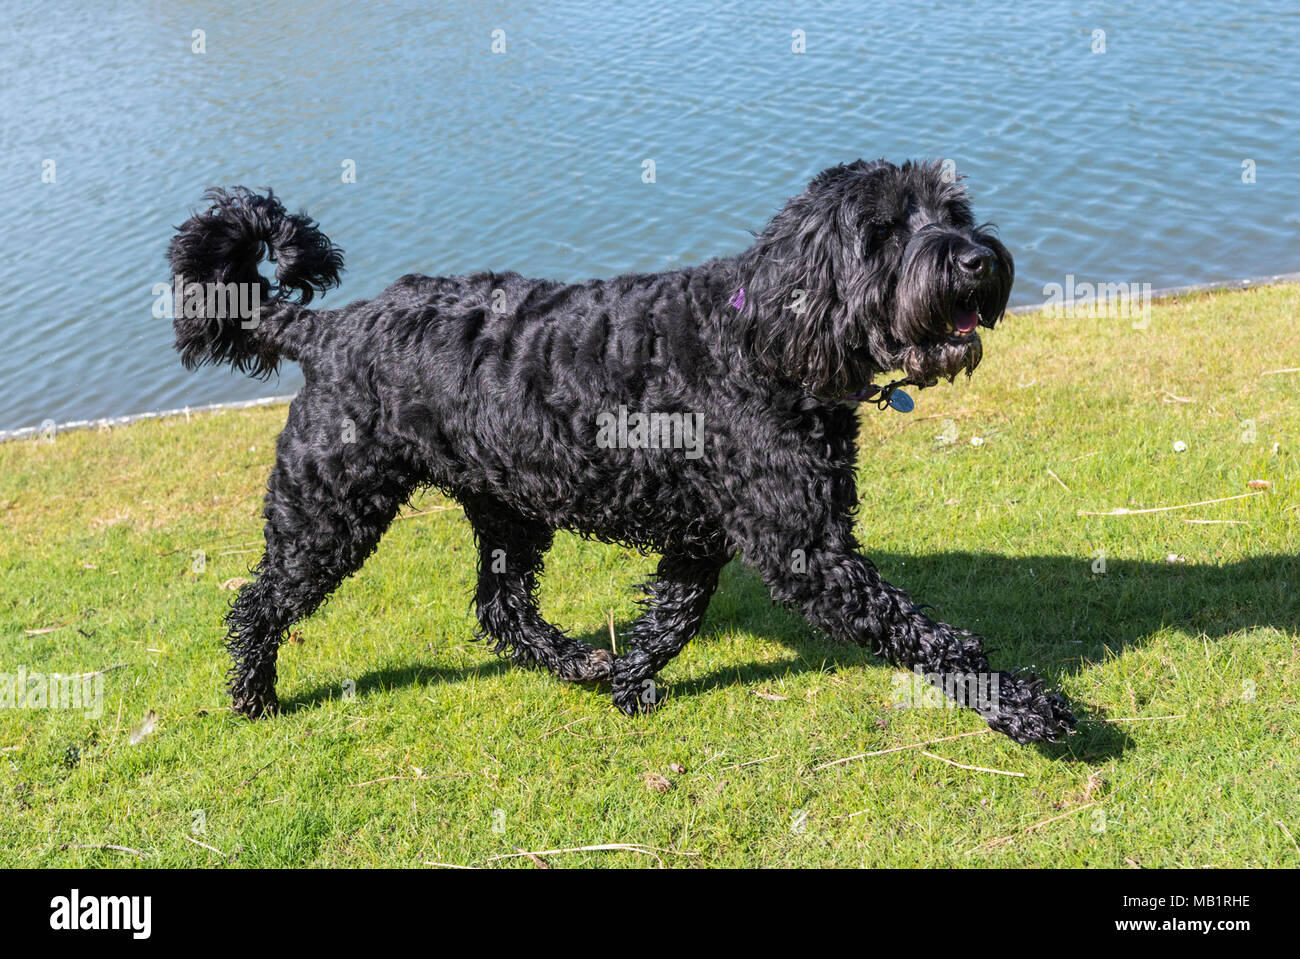 Springerdoodle (English Springer Spaniel and Poodle mixed breed) dog